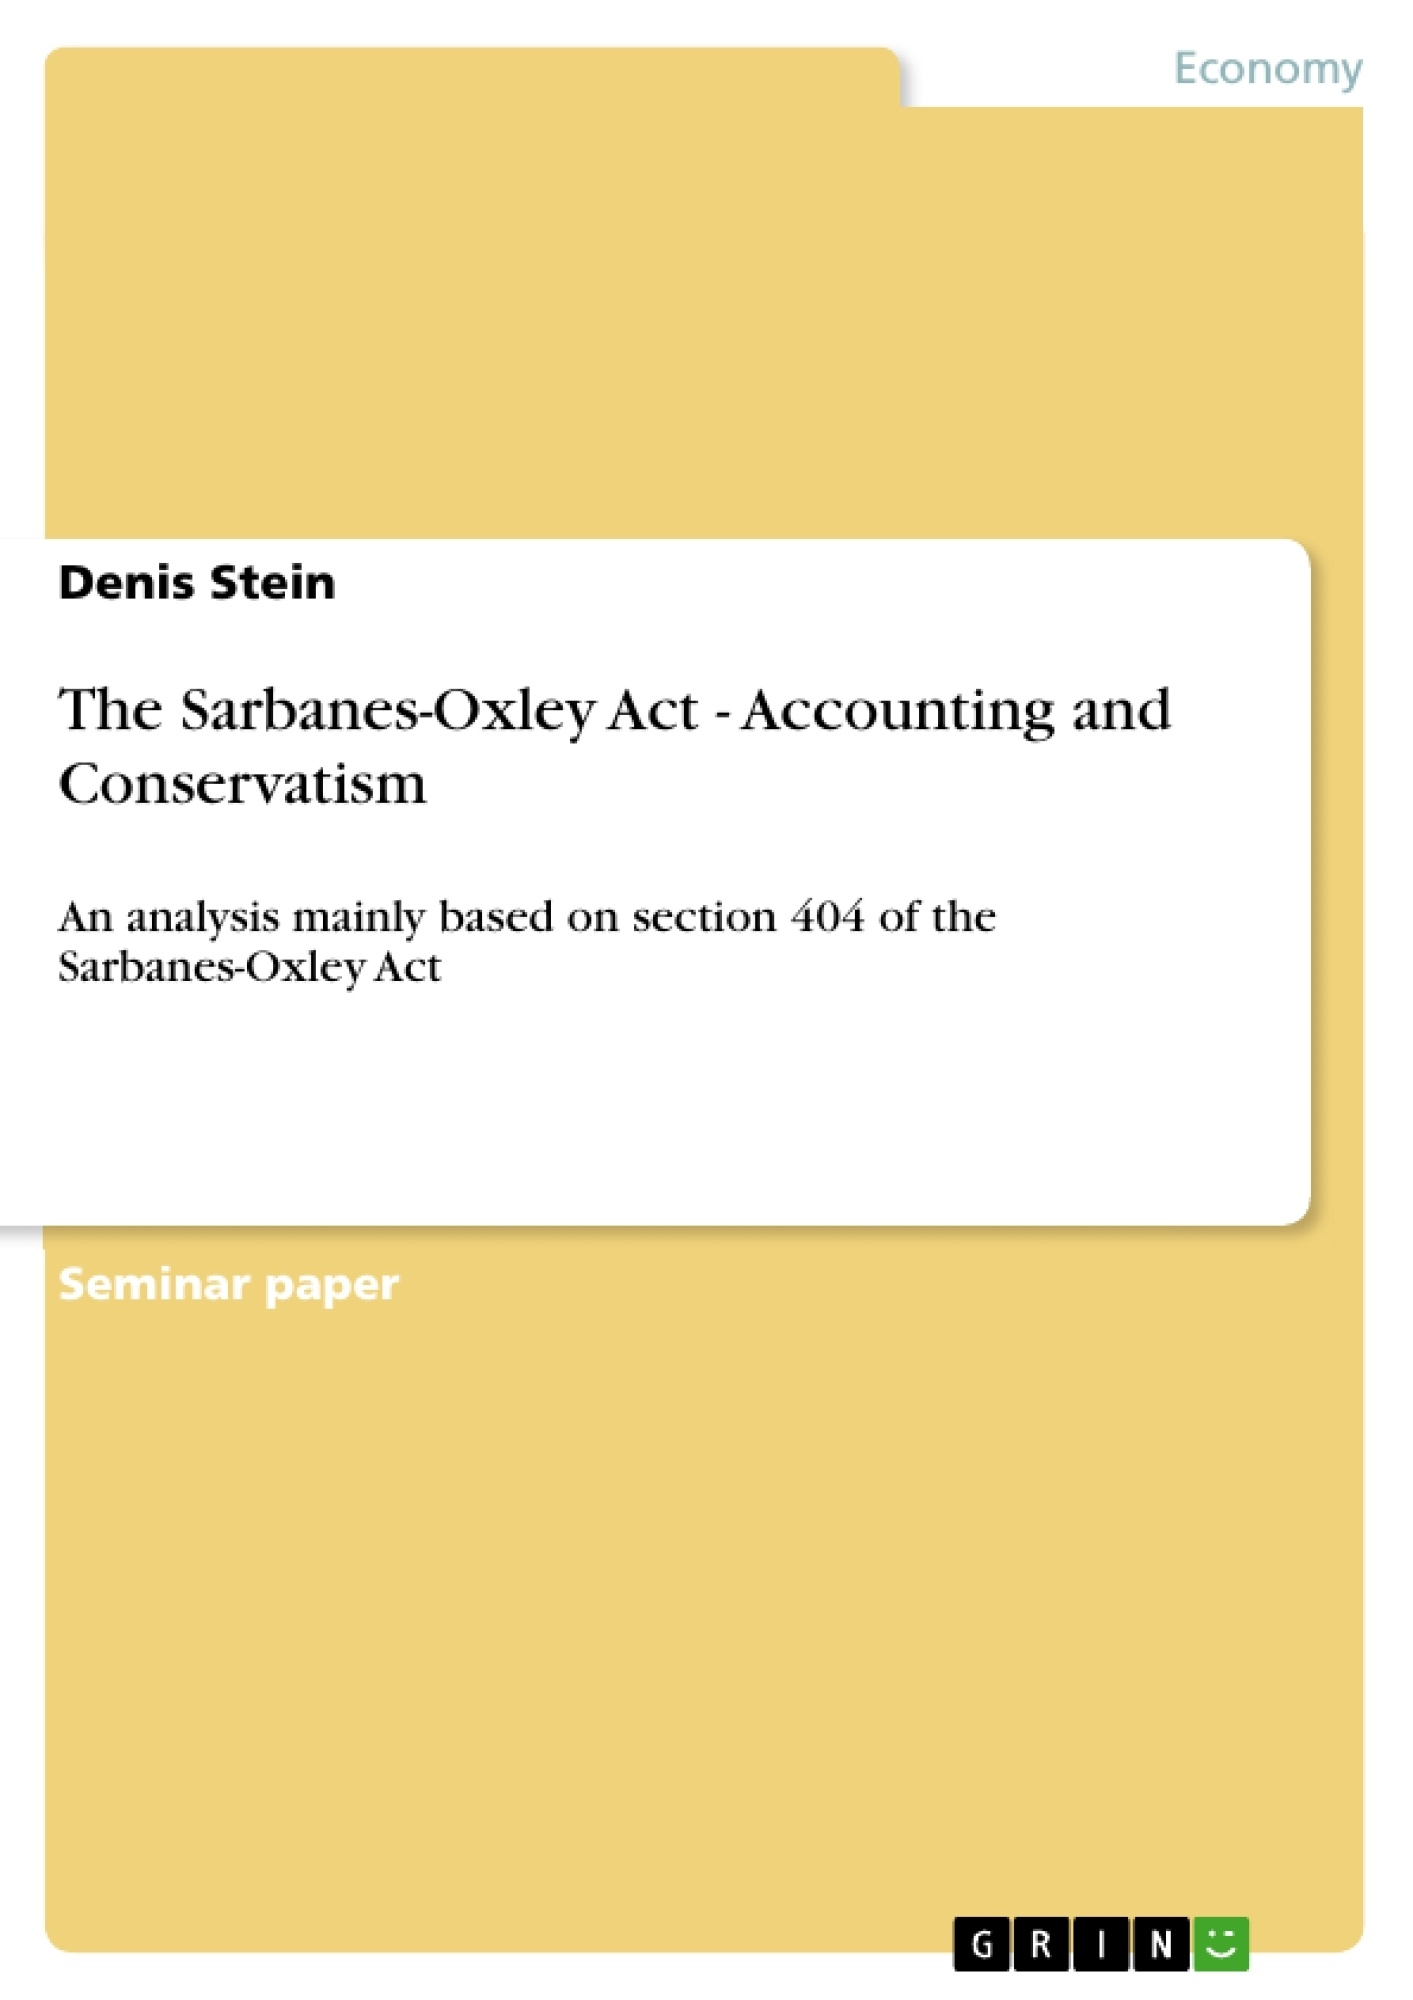 Title: The Sarbanes-Oxley Act - Accounting and Conservatism